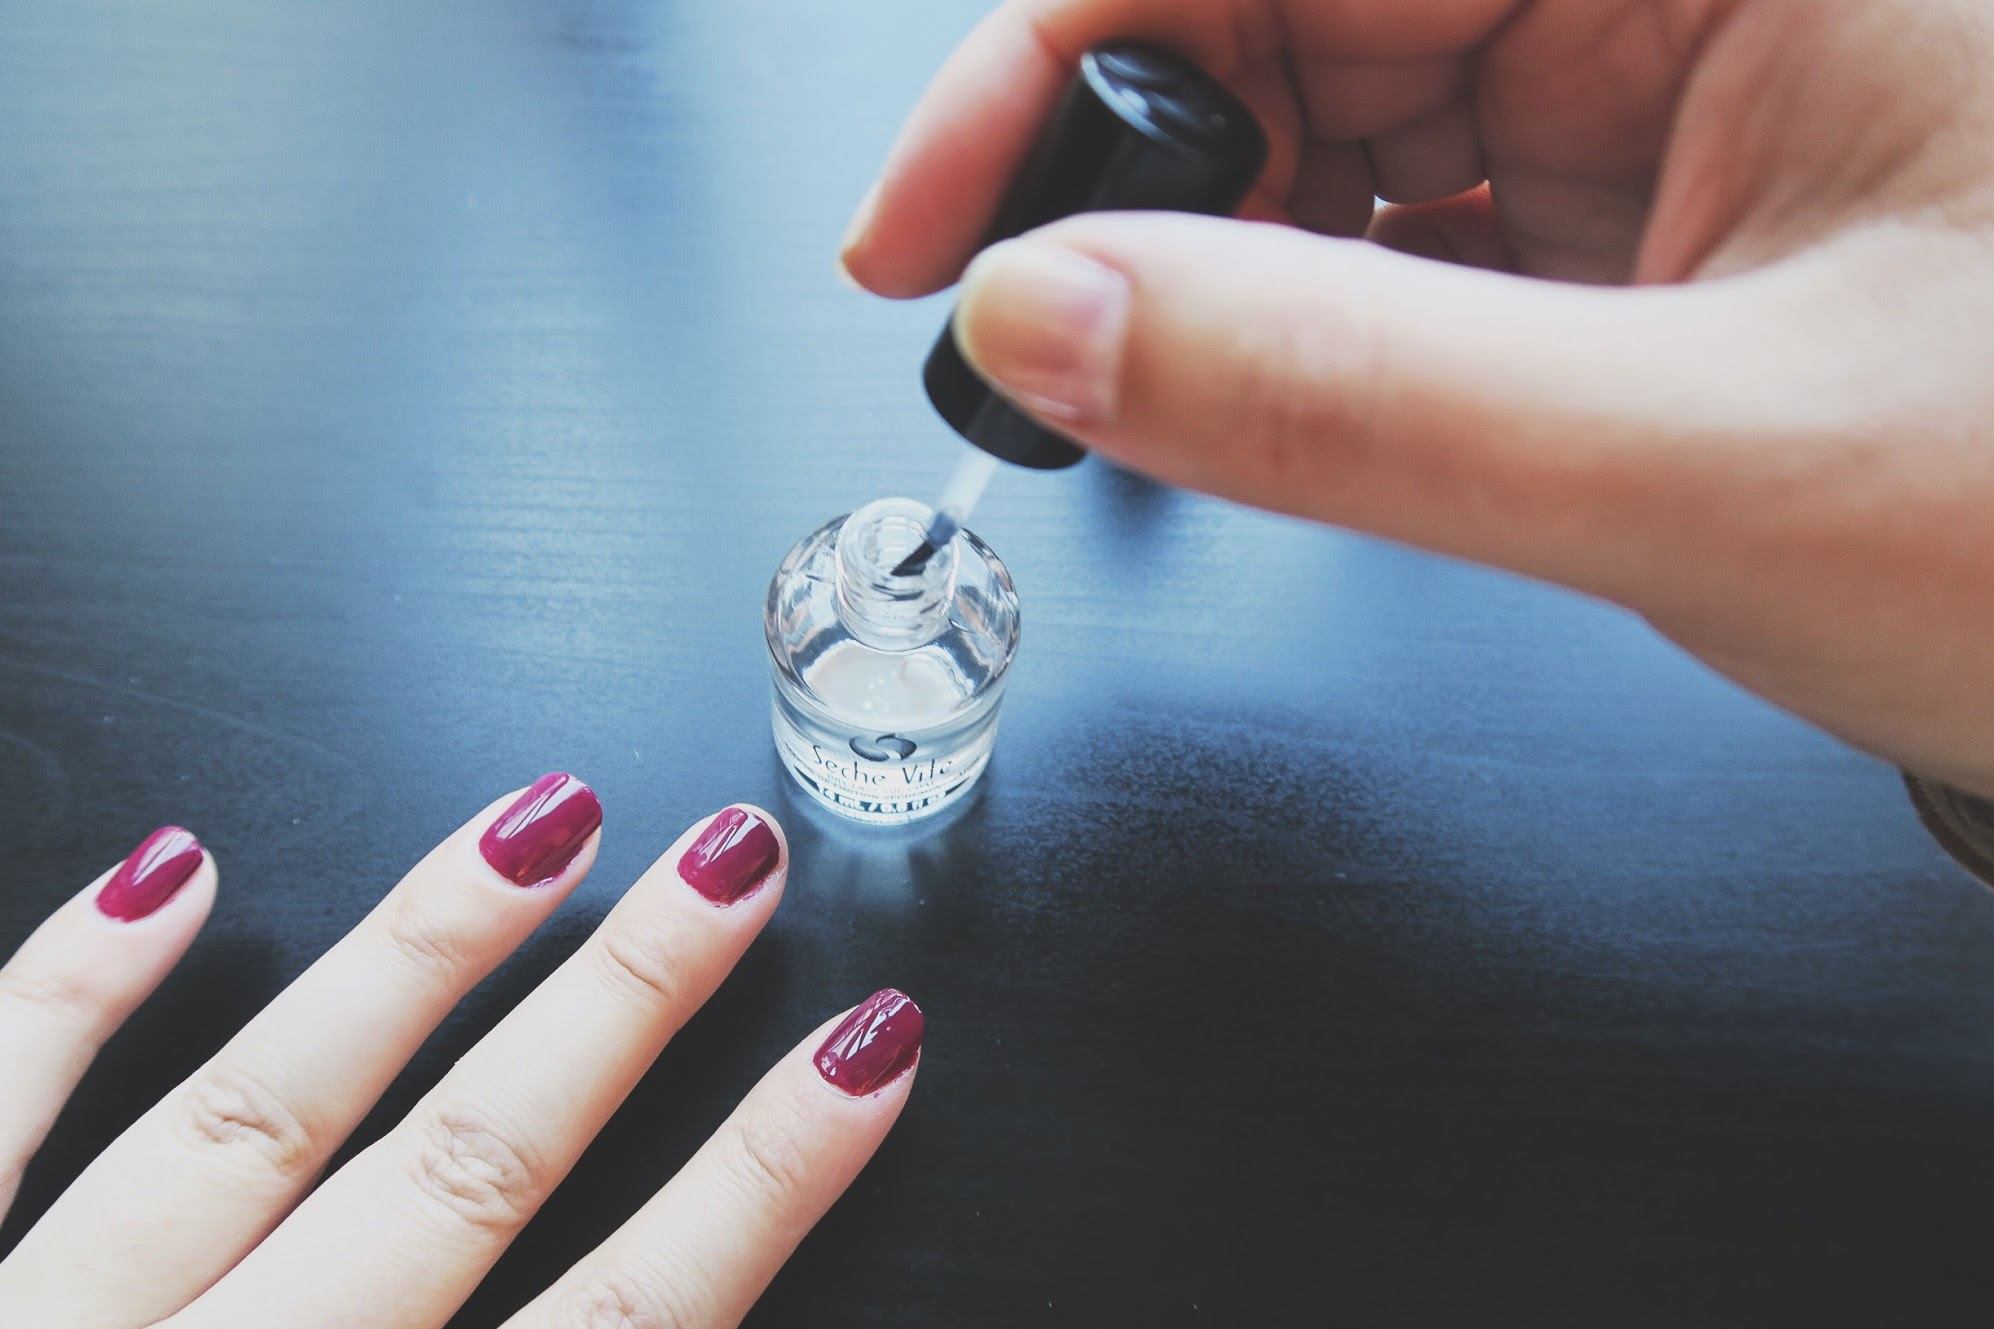 How to Paint Your Nails Without Smudges recommend